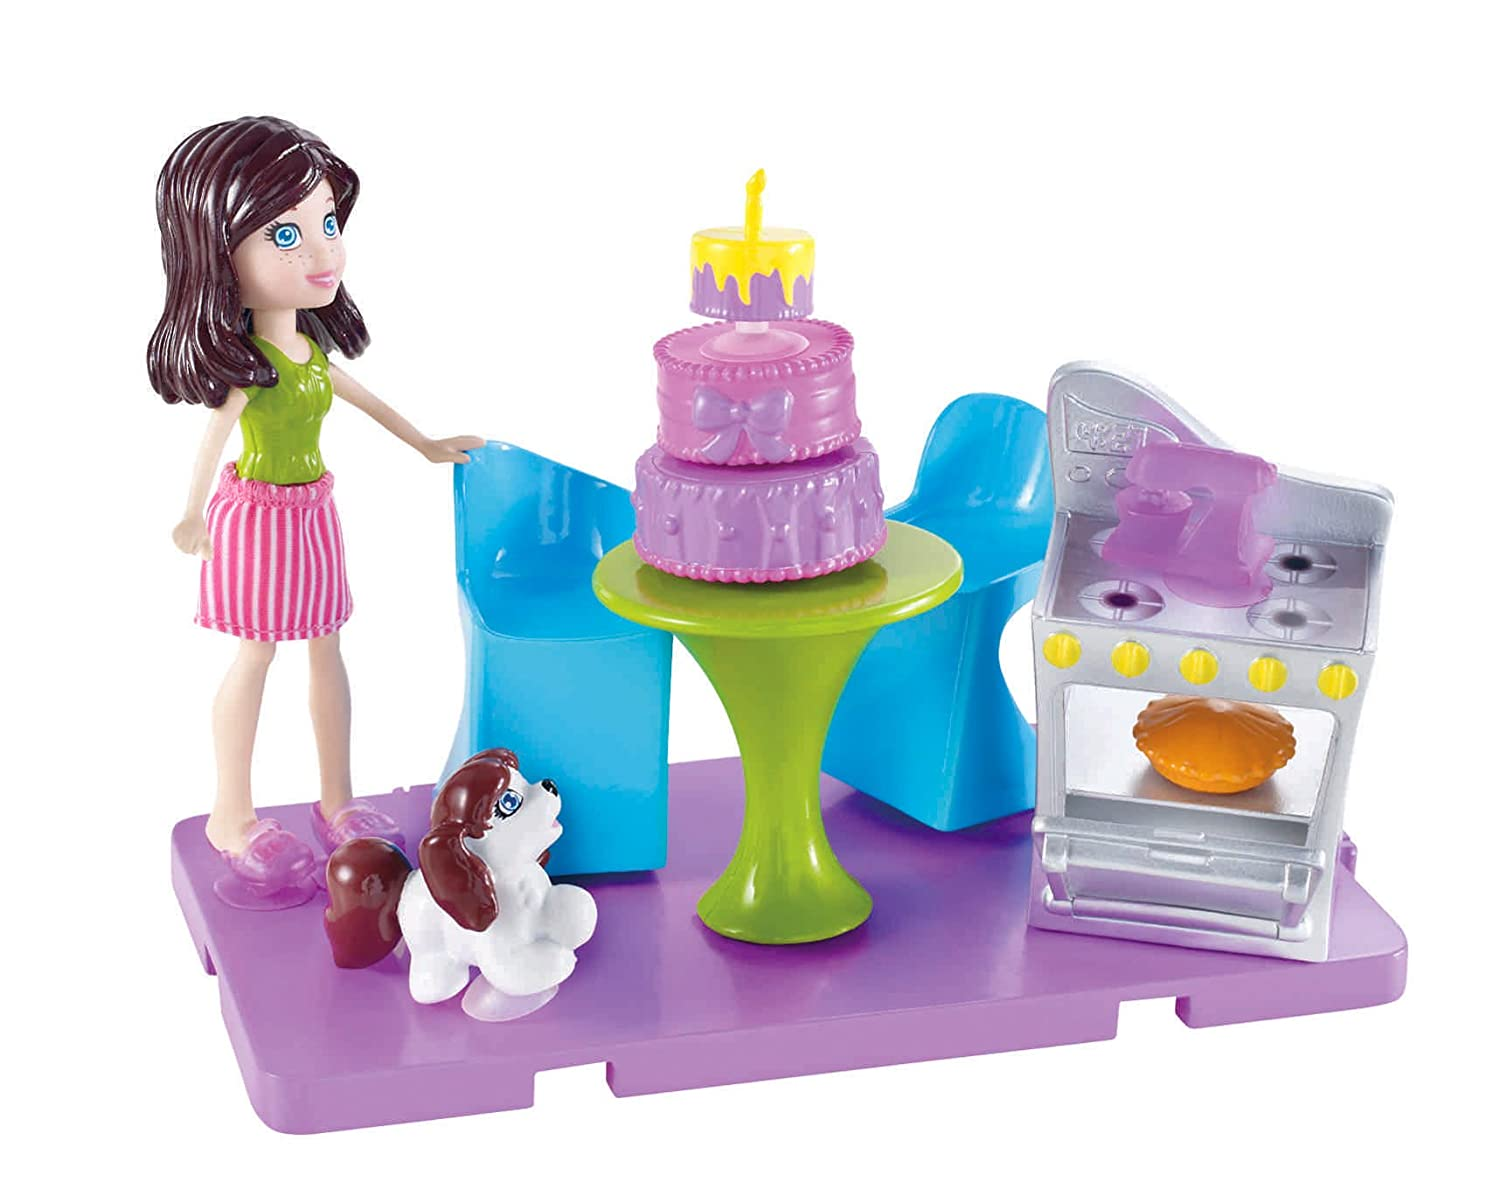 Polly Pocket Stick N Play Polly Game Room Playset – Top ...